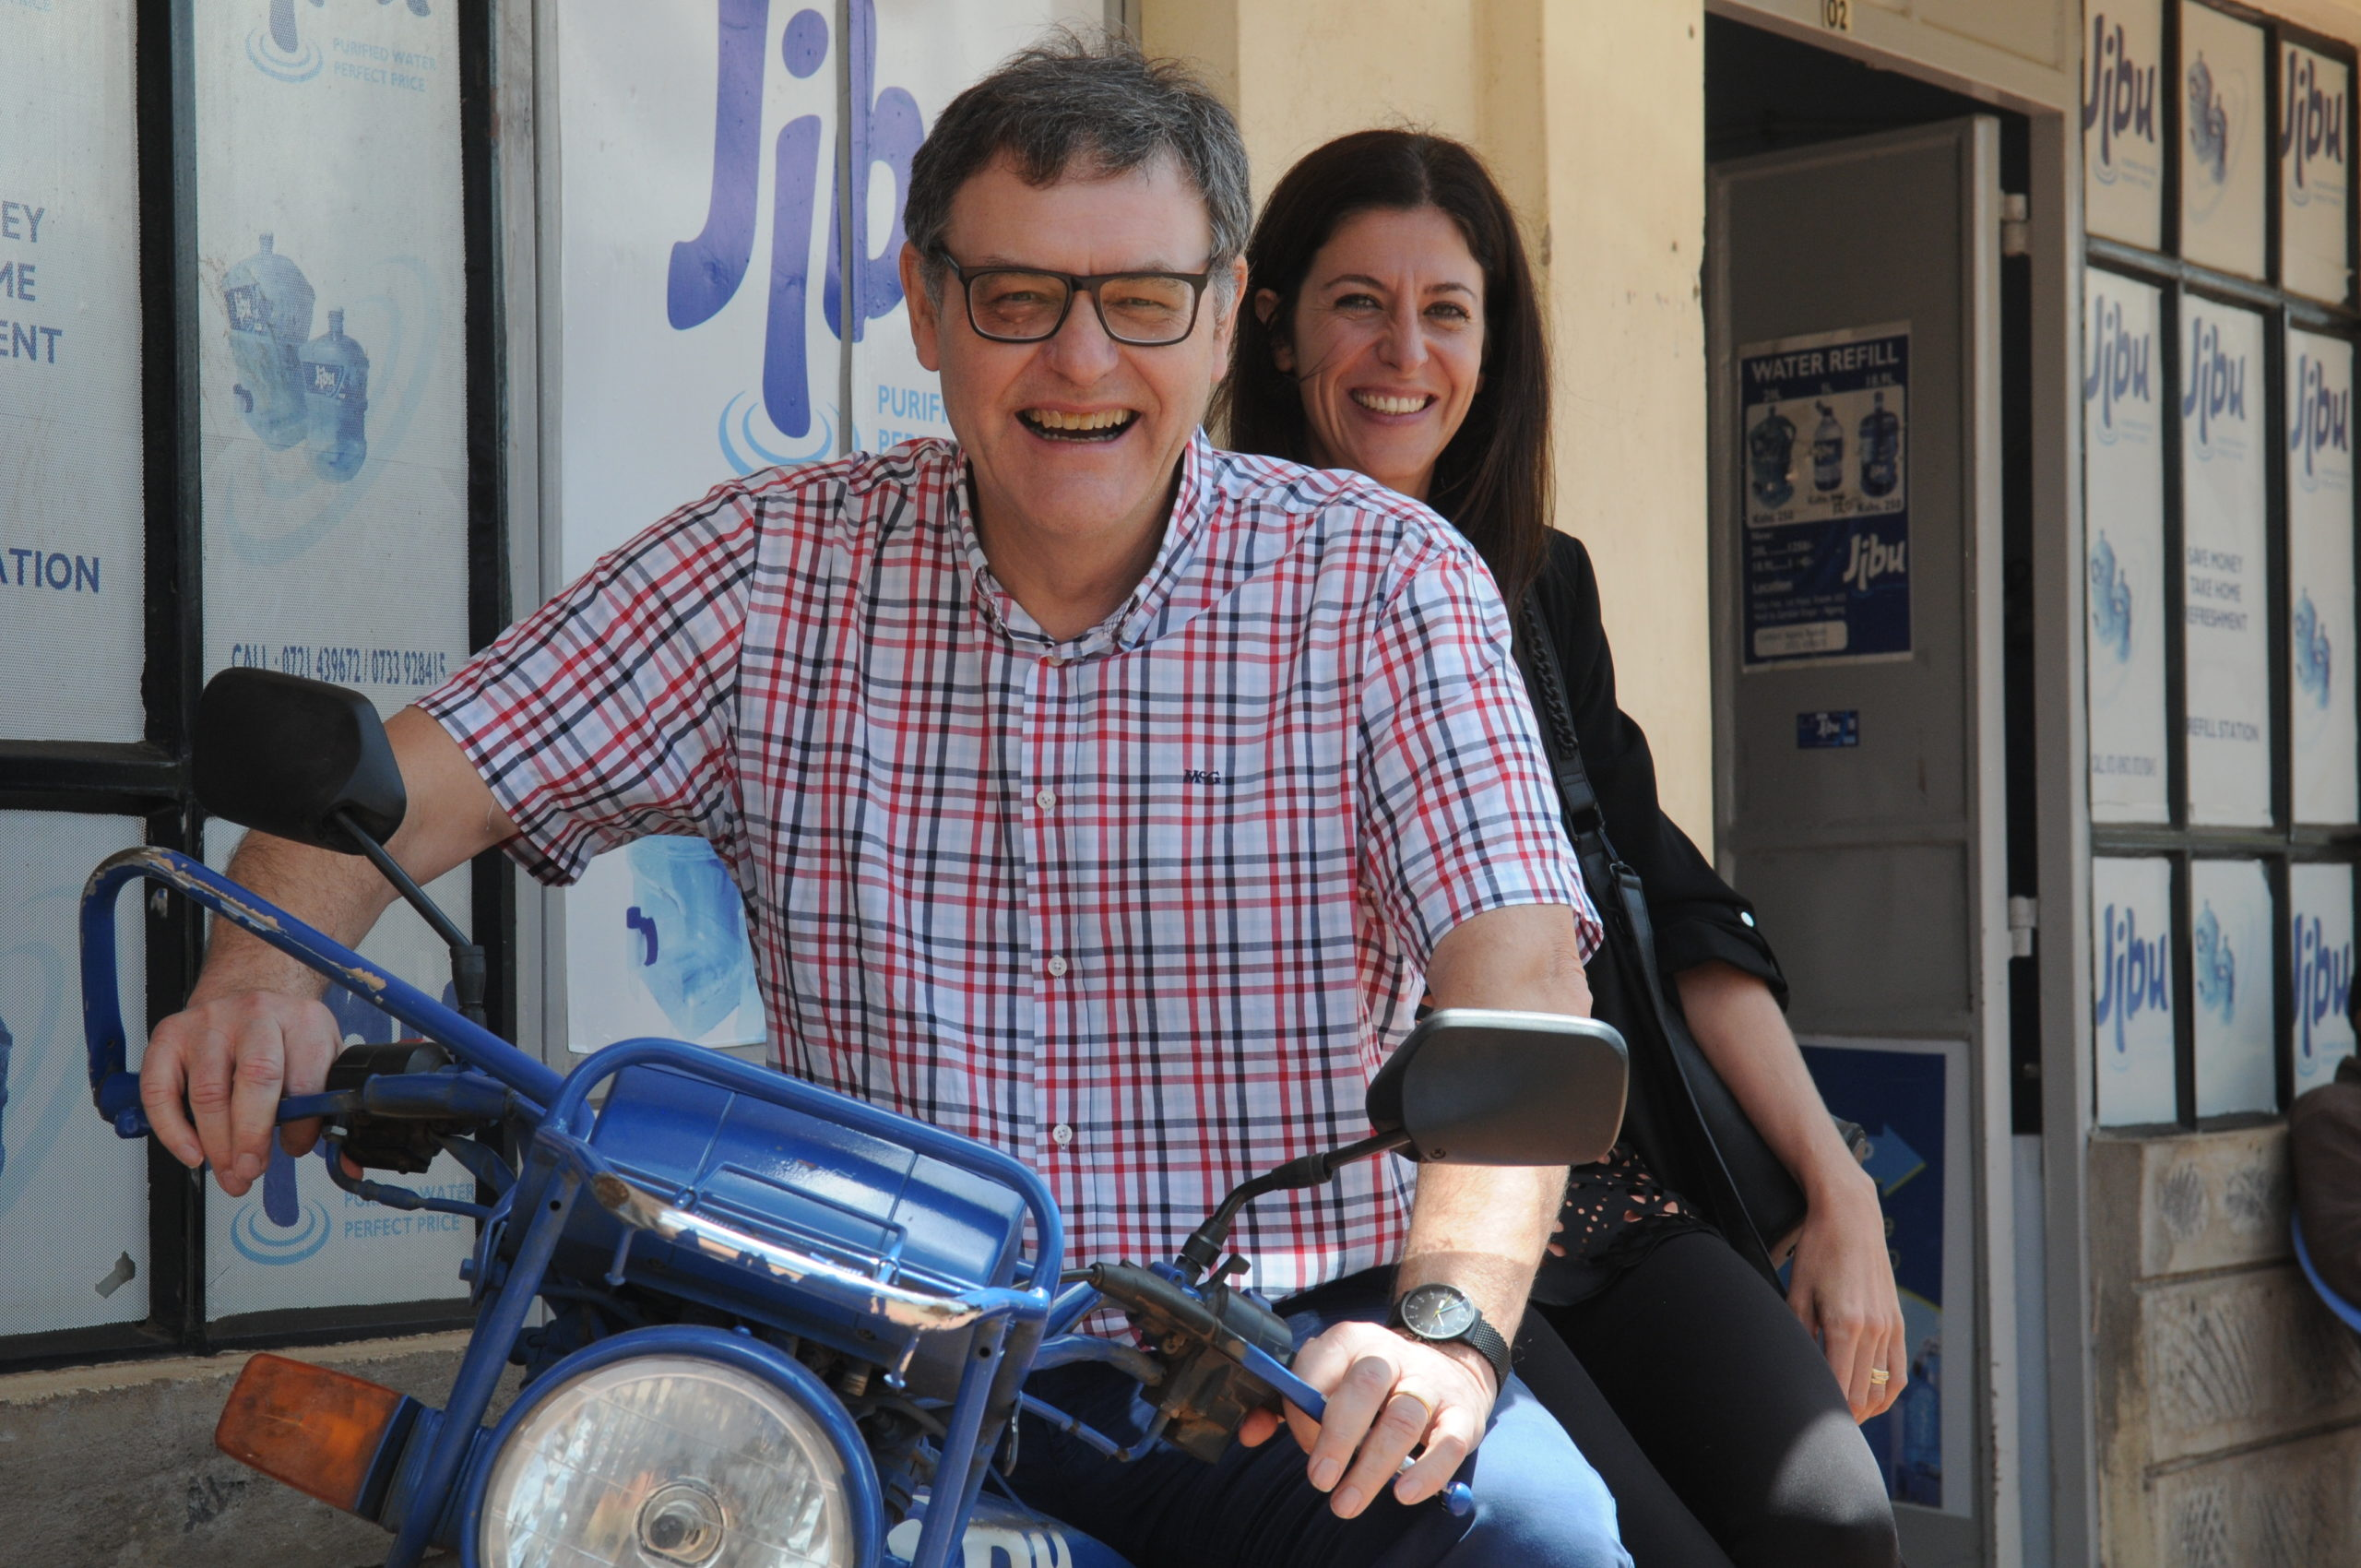 Incofin Founder with Regional Director and Impact Manager Dina Pons on a motorbike that brings clean drinking water from a water kiosk to local vendors.